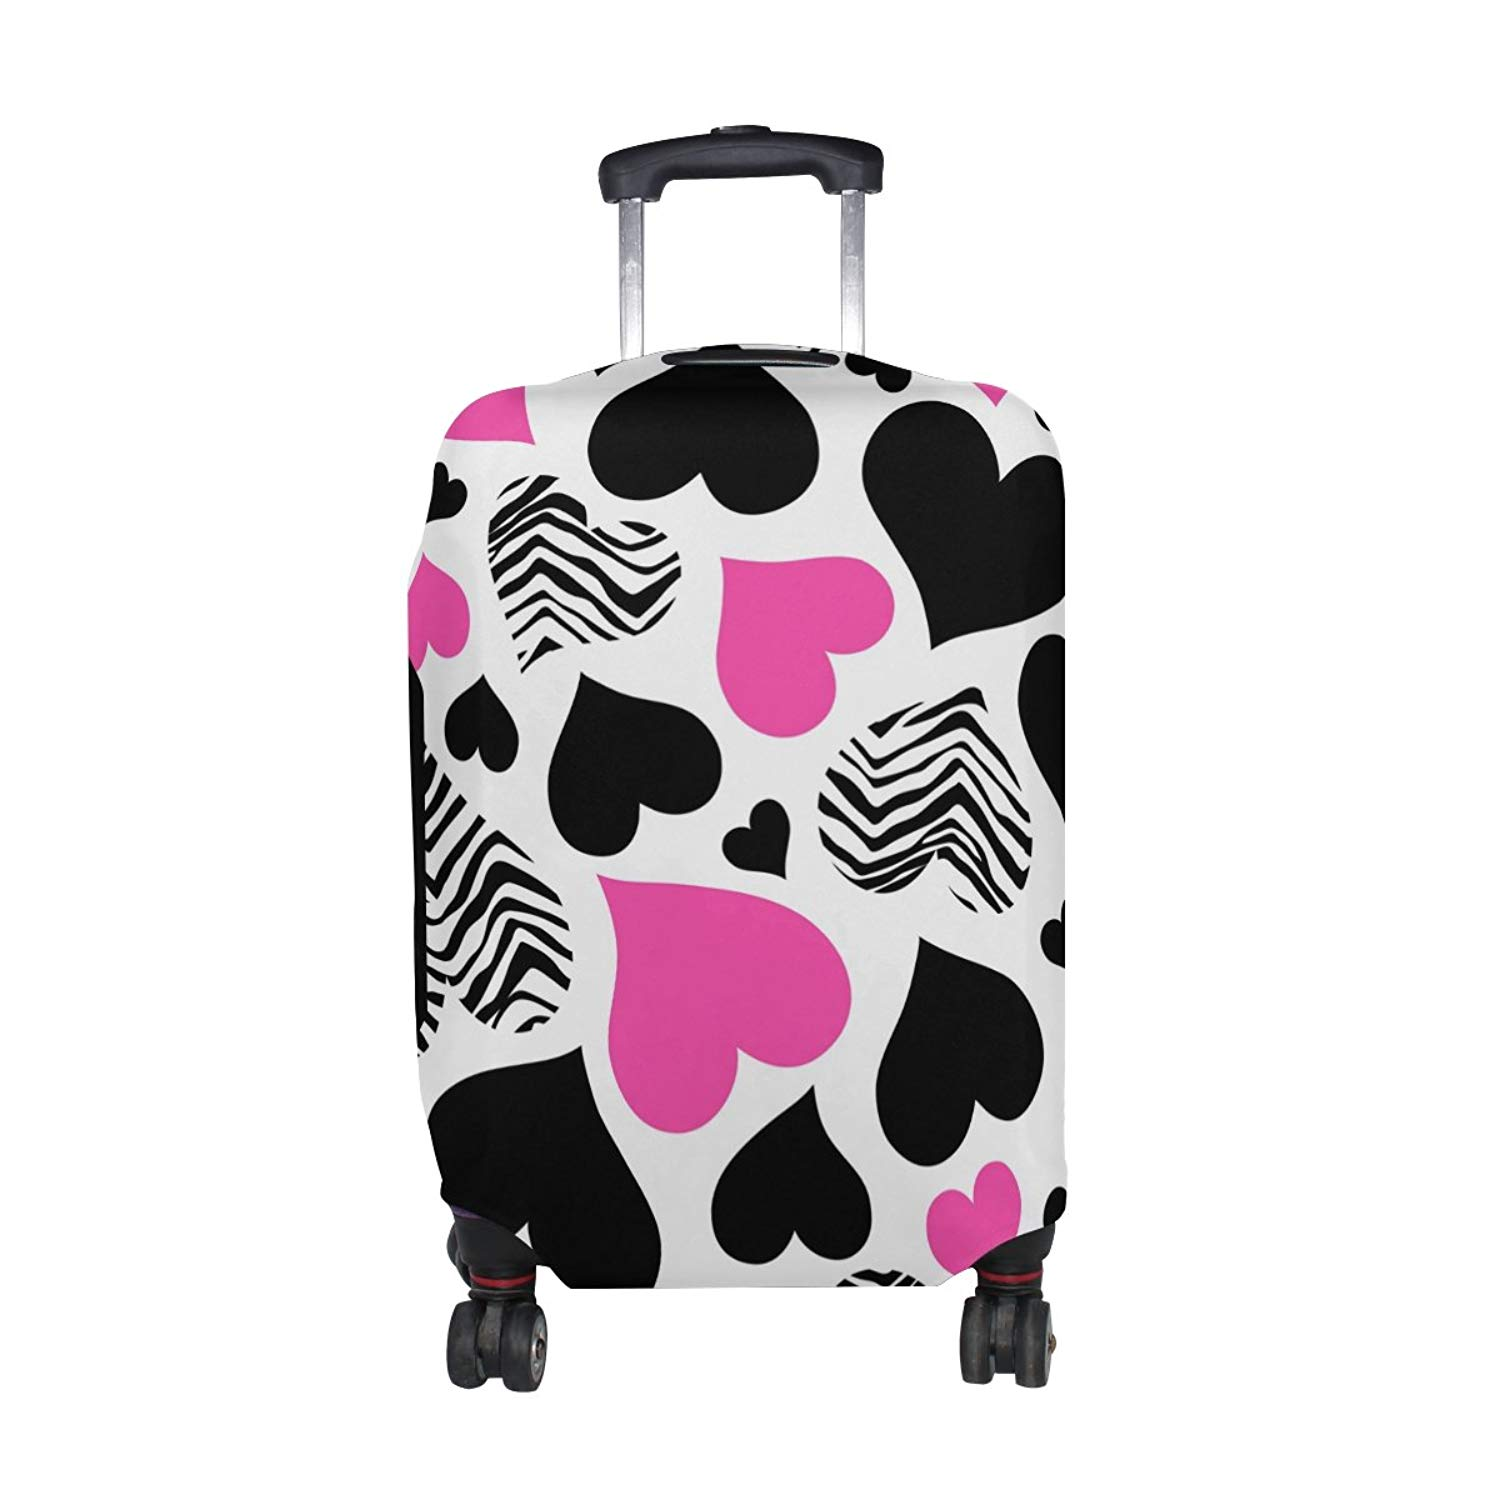 OREZI 3D Trendy Black And White Luggage Protector Suitcase Cover 18-32 Inch